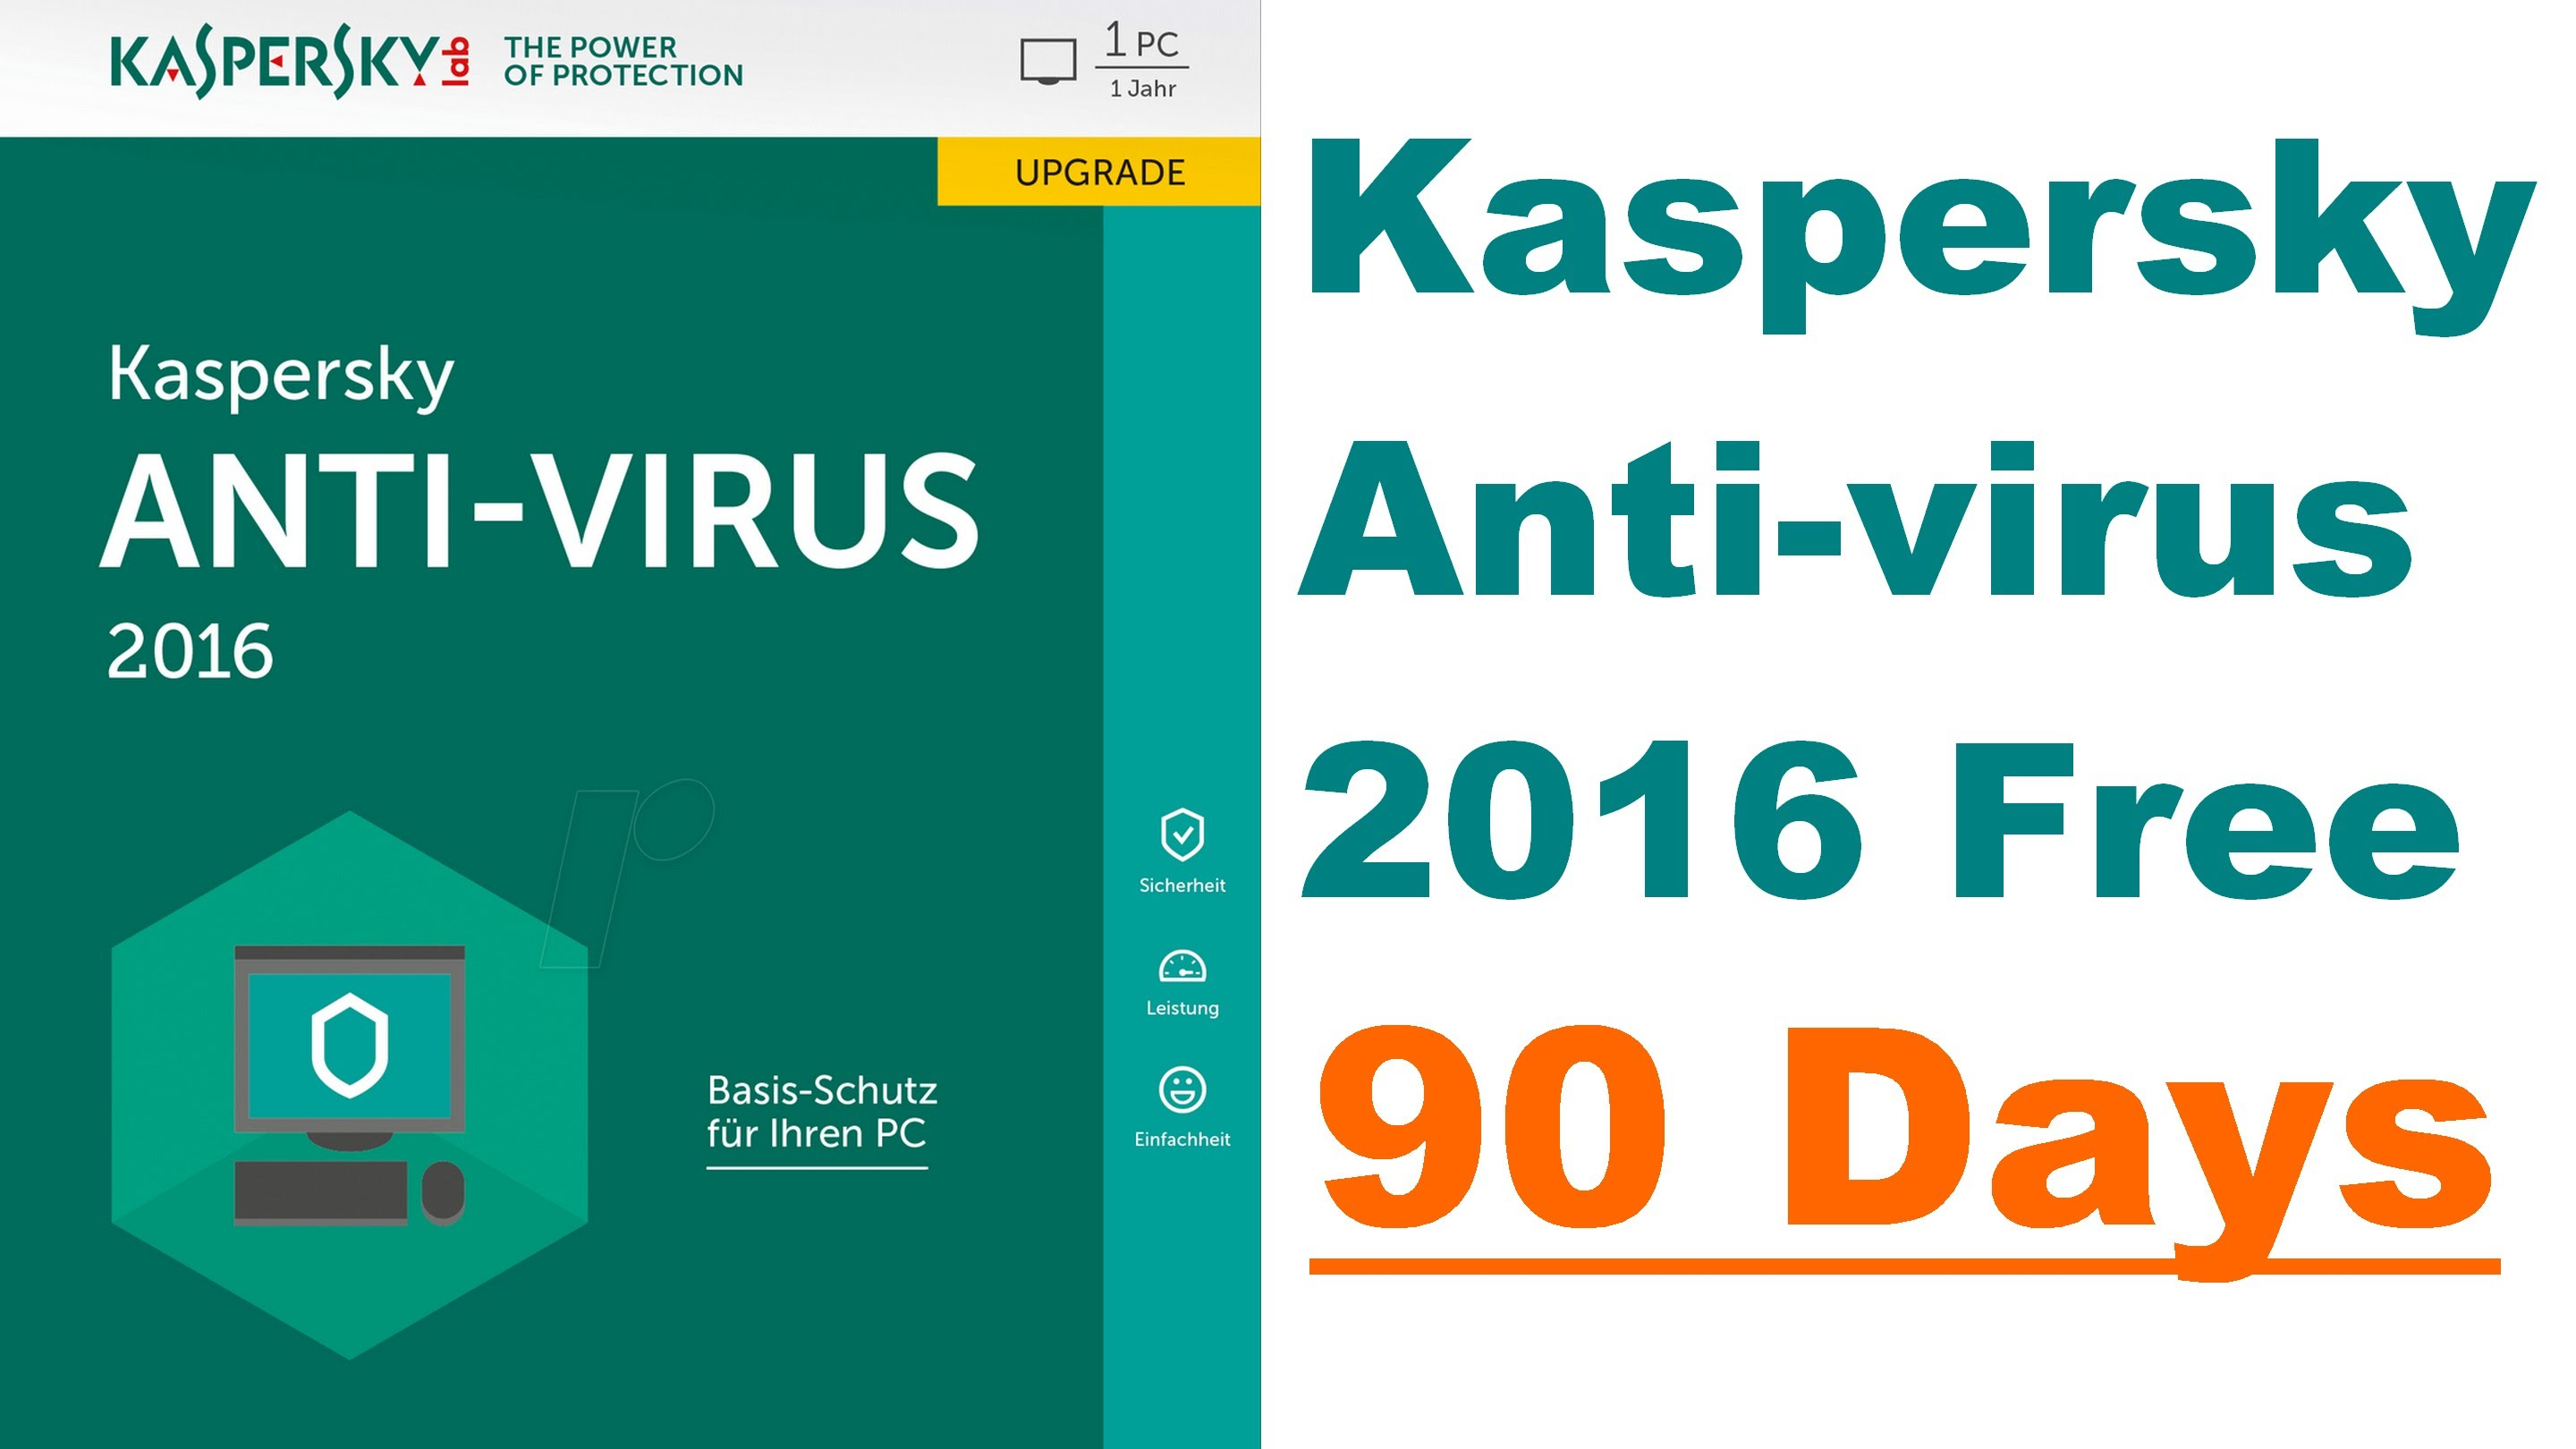 antivirus-dlja-Windows-10-photo-12